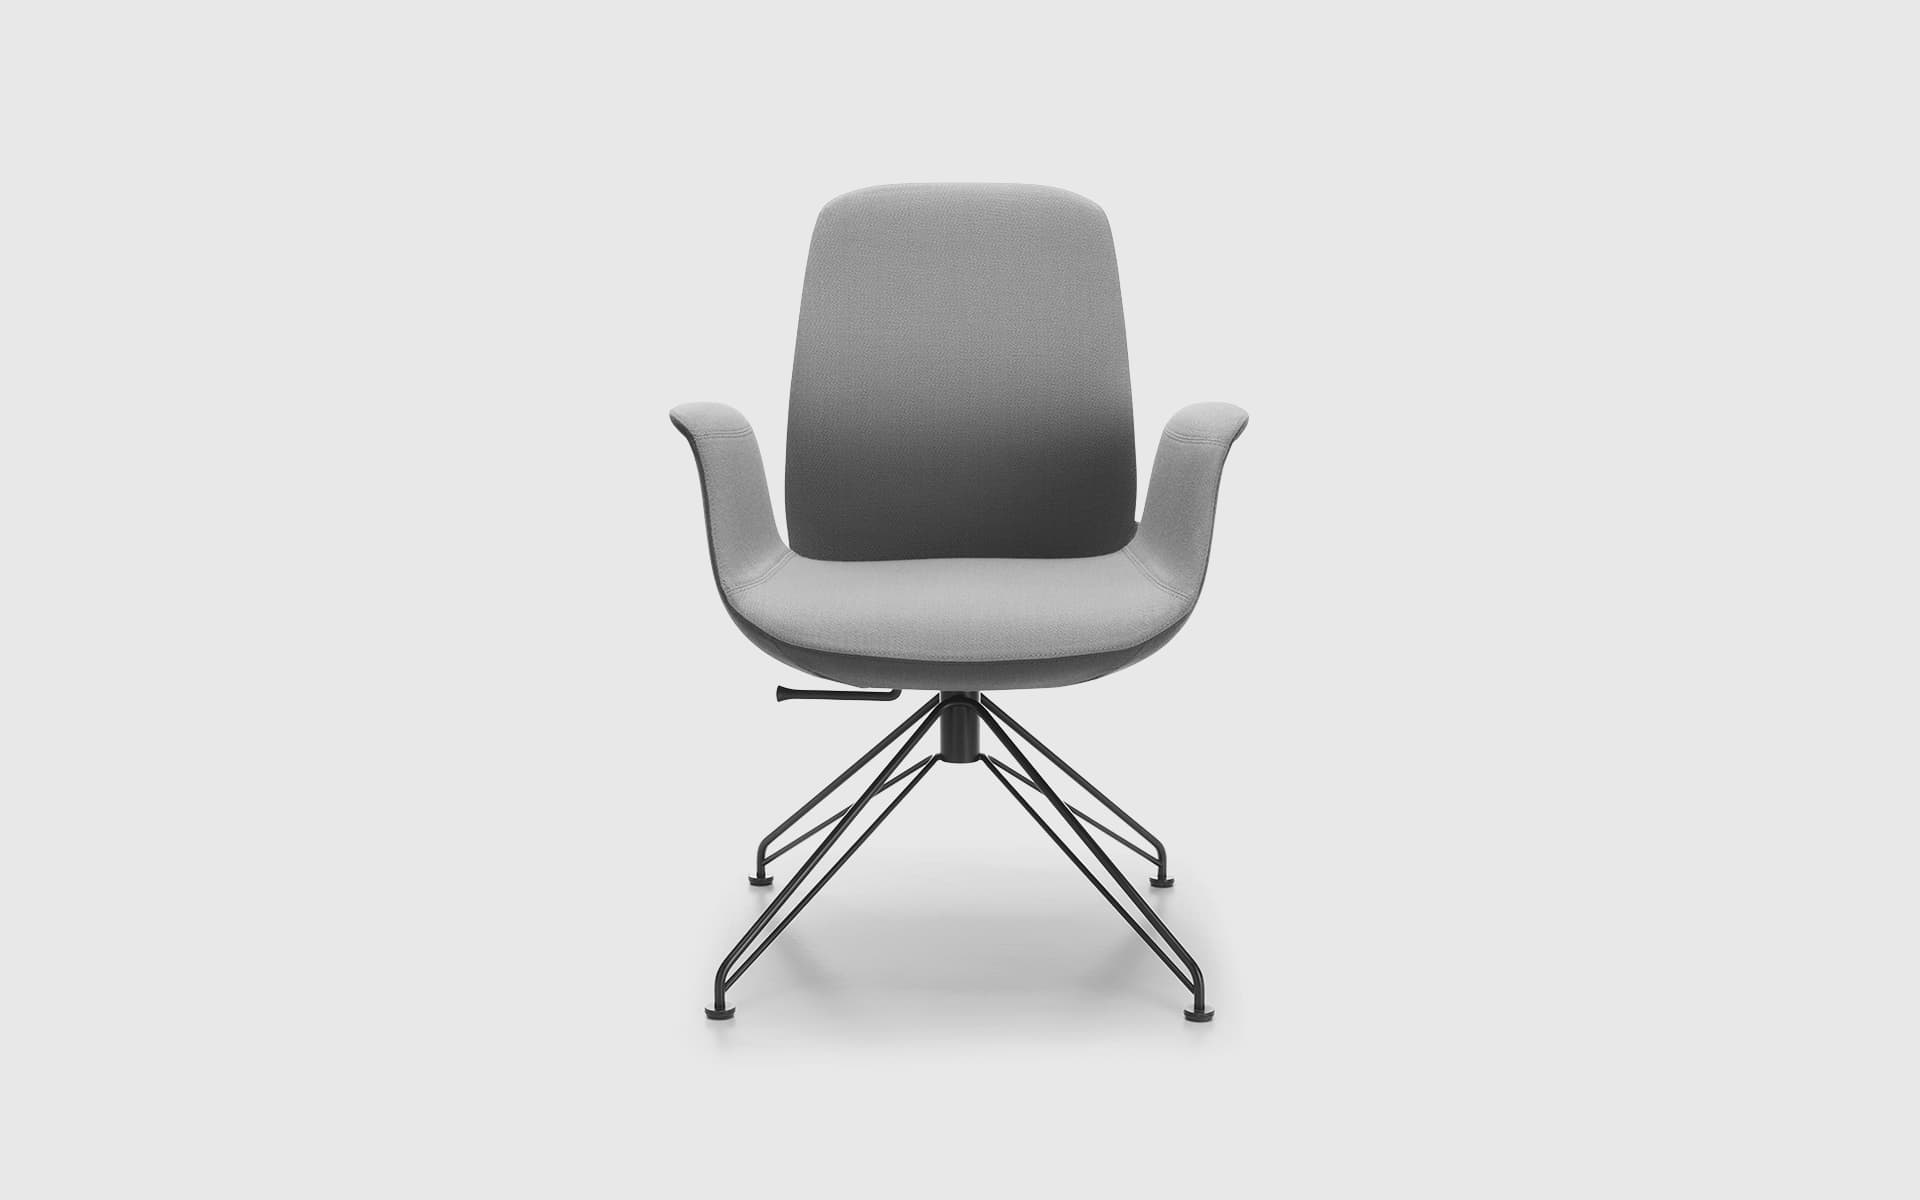 Frontal shot of the Profim Ellie office chair by ITO Design in light grey with metal legs